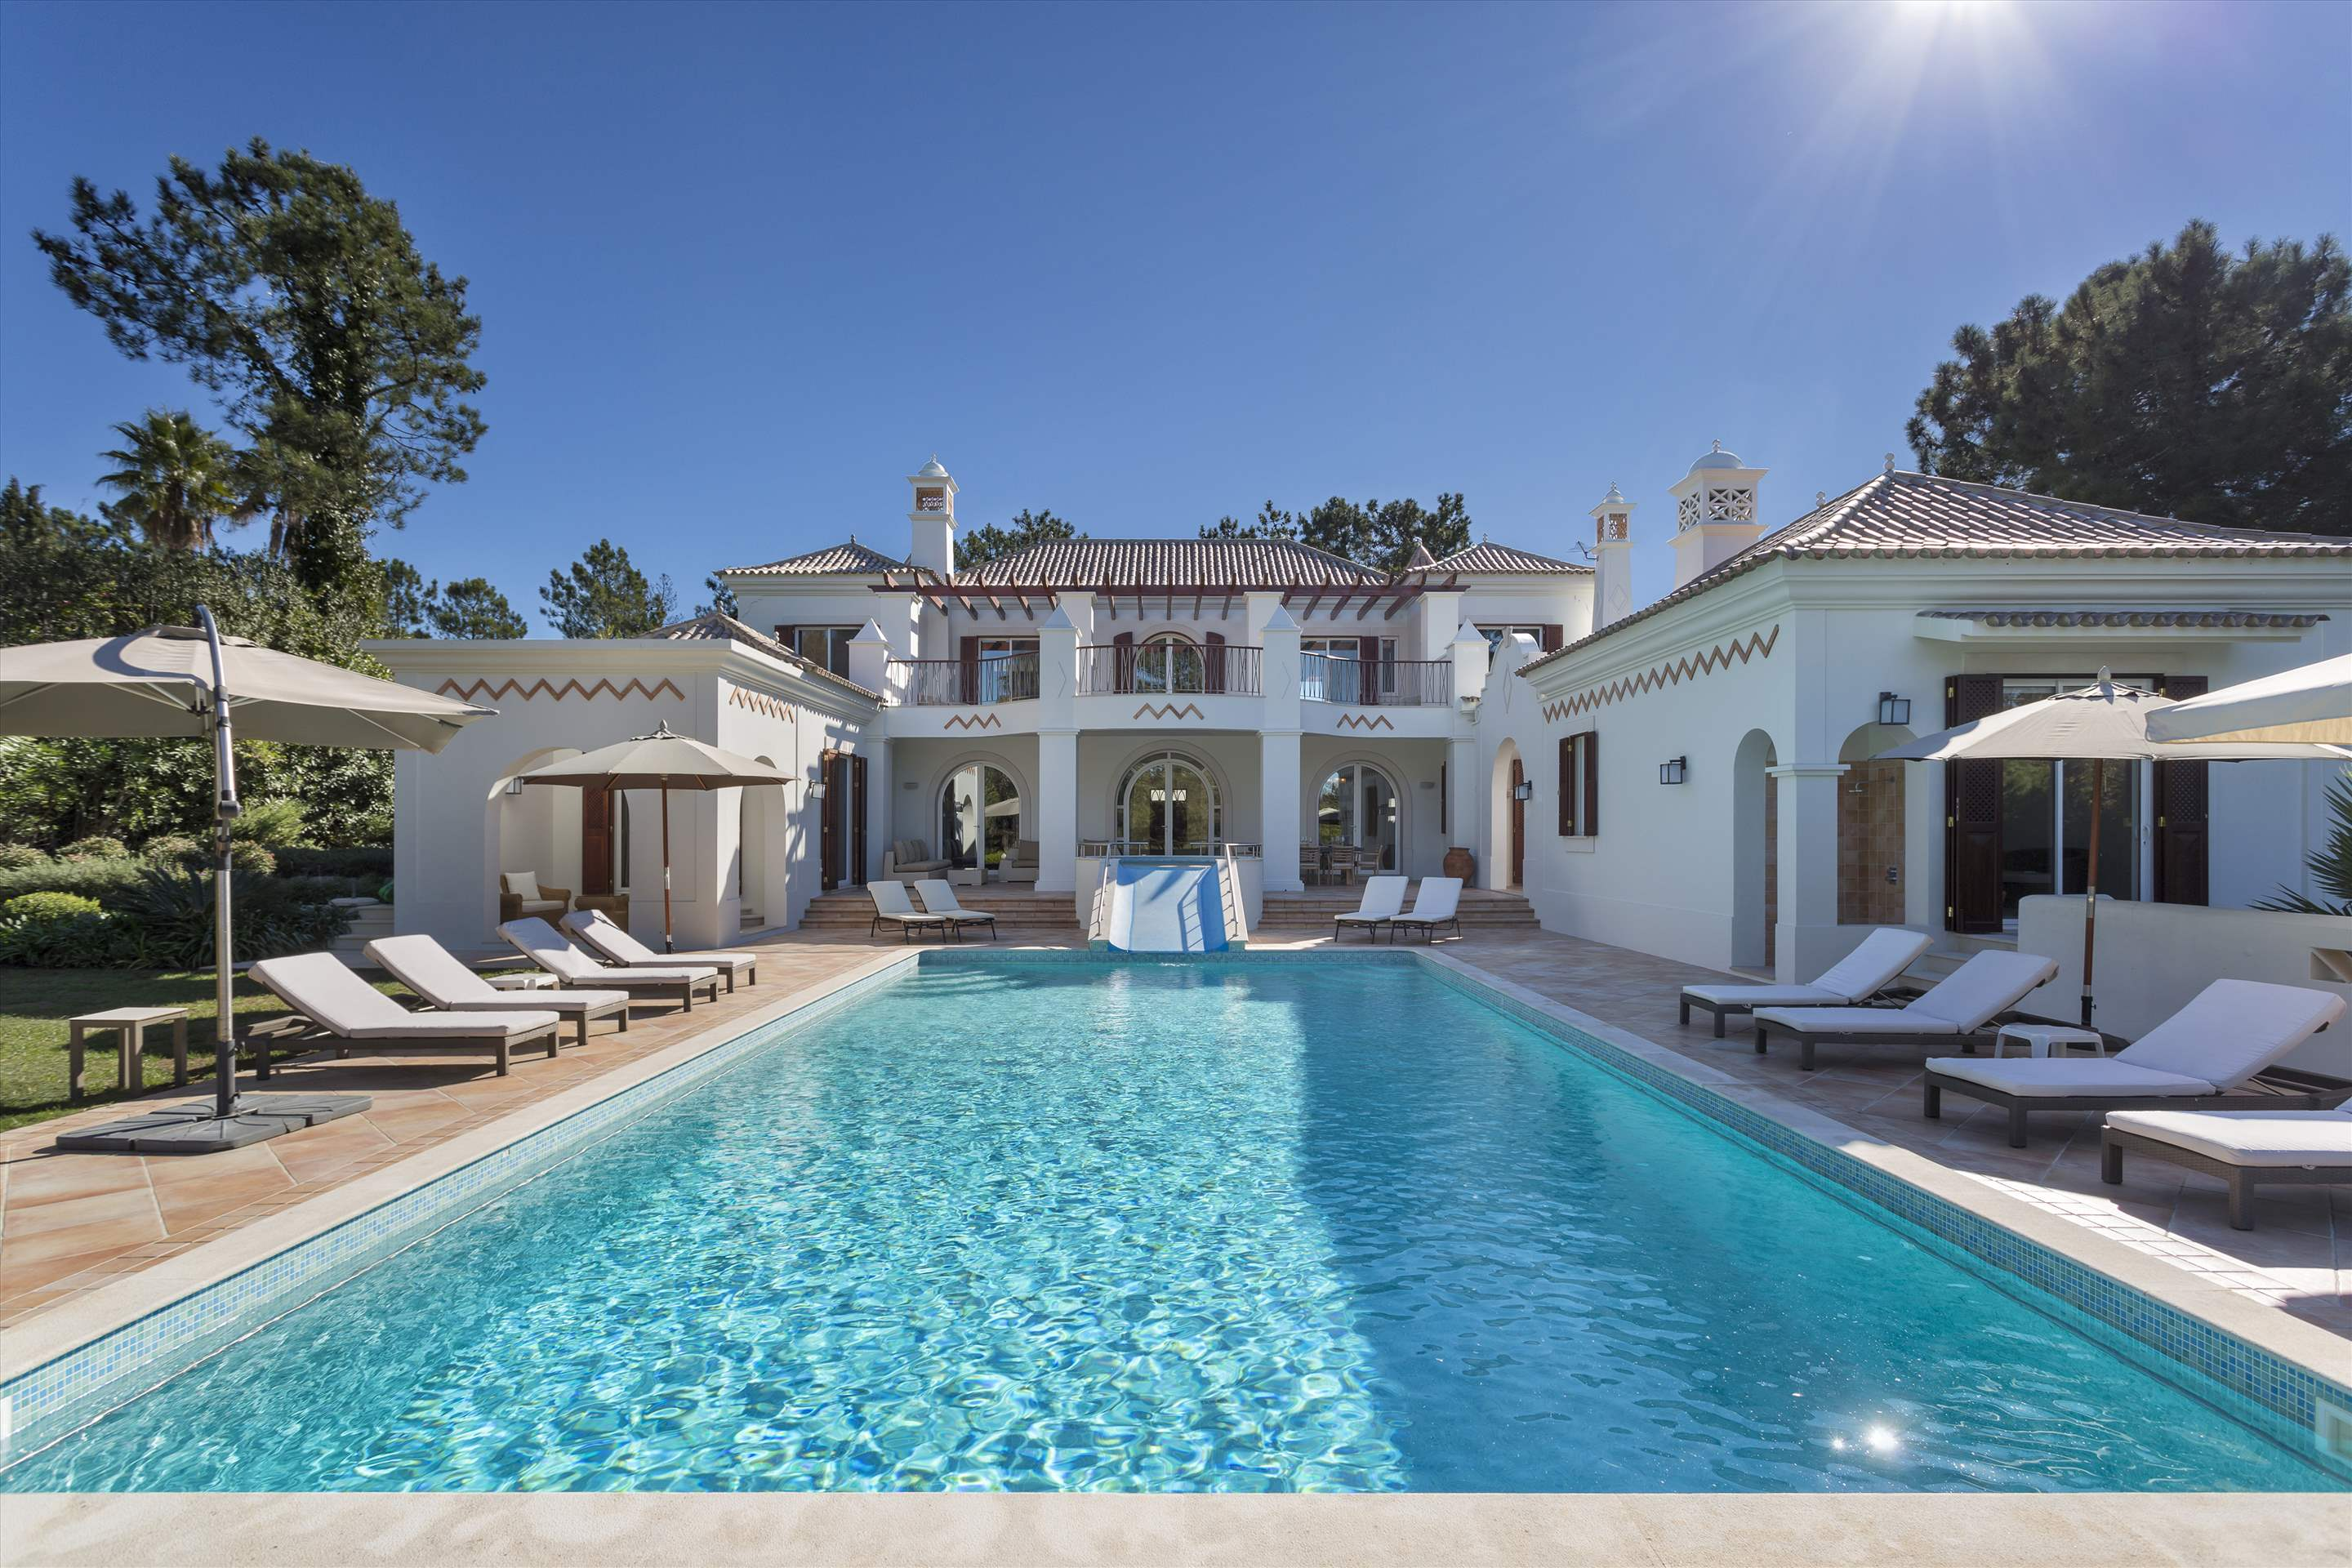 Villa Lantana 2, Main house & Annexe, 6 bedrooms, 6 bedroom villa in Quinta do Lago, Algarve Photo #8